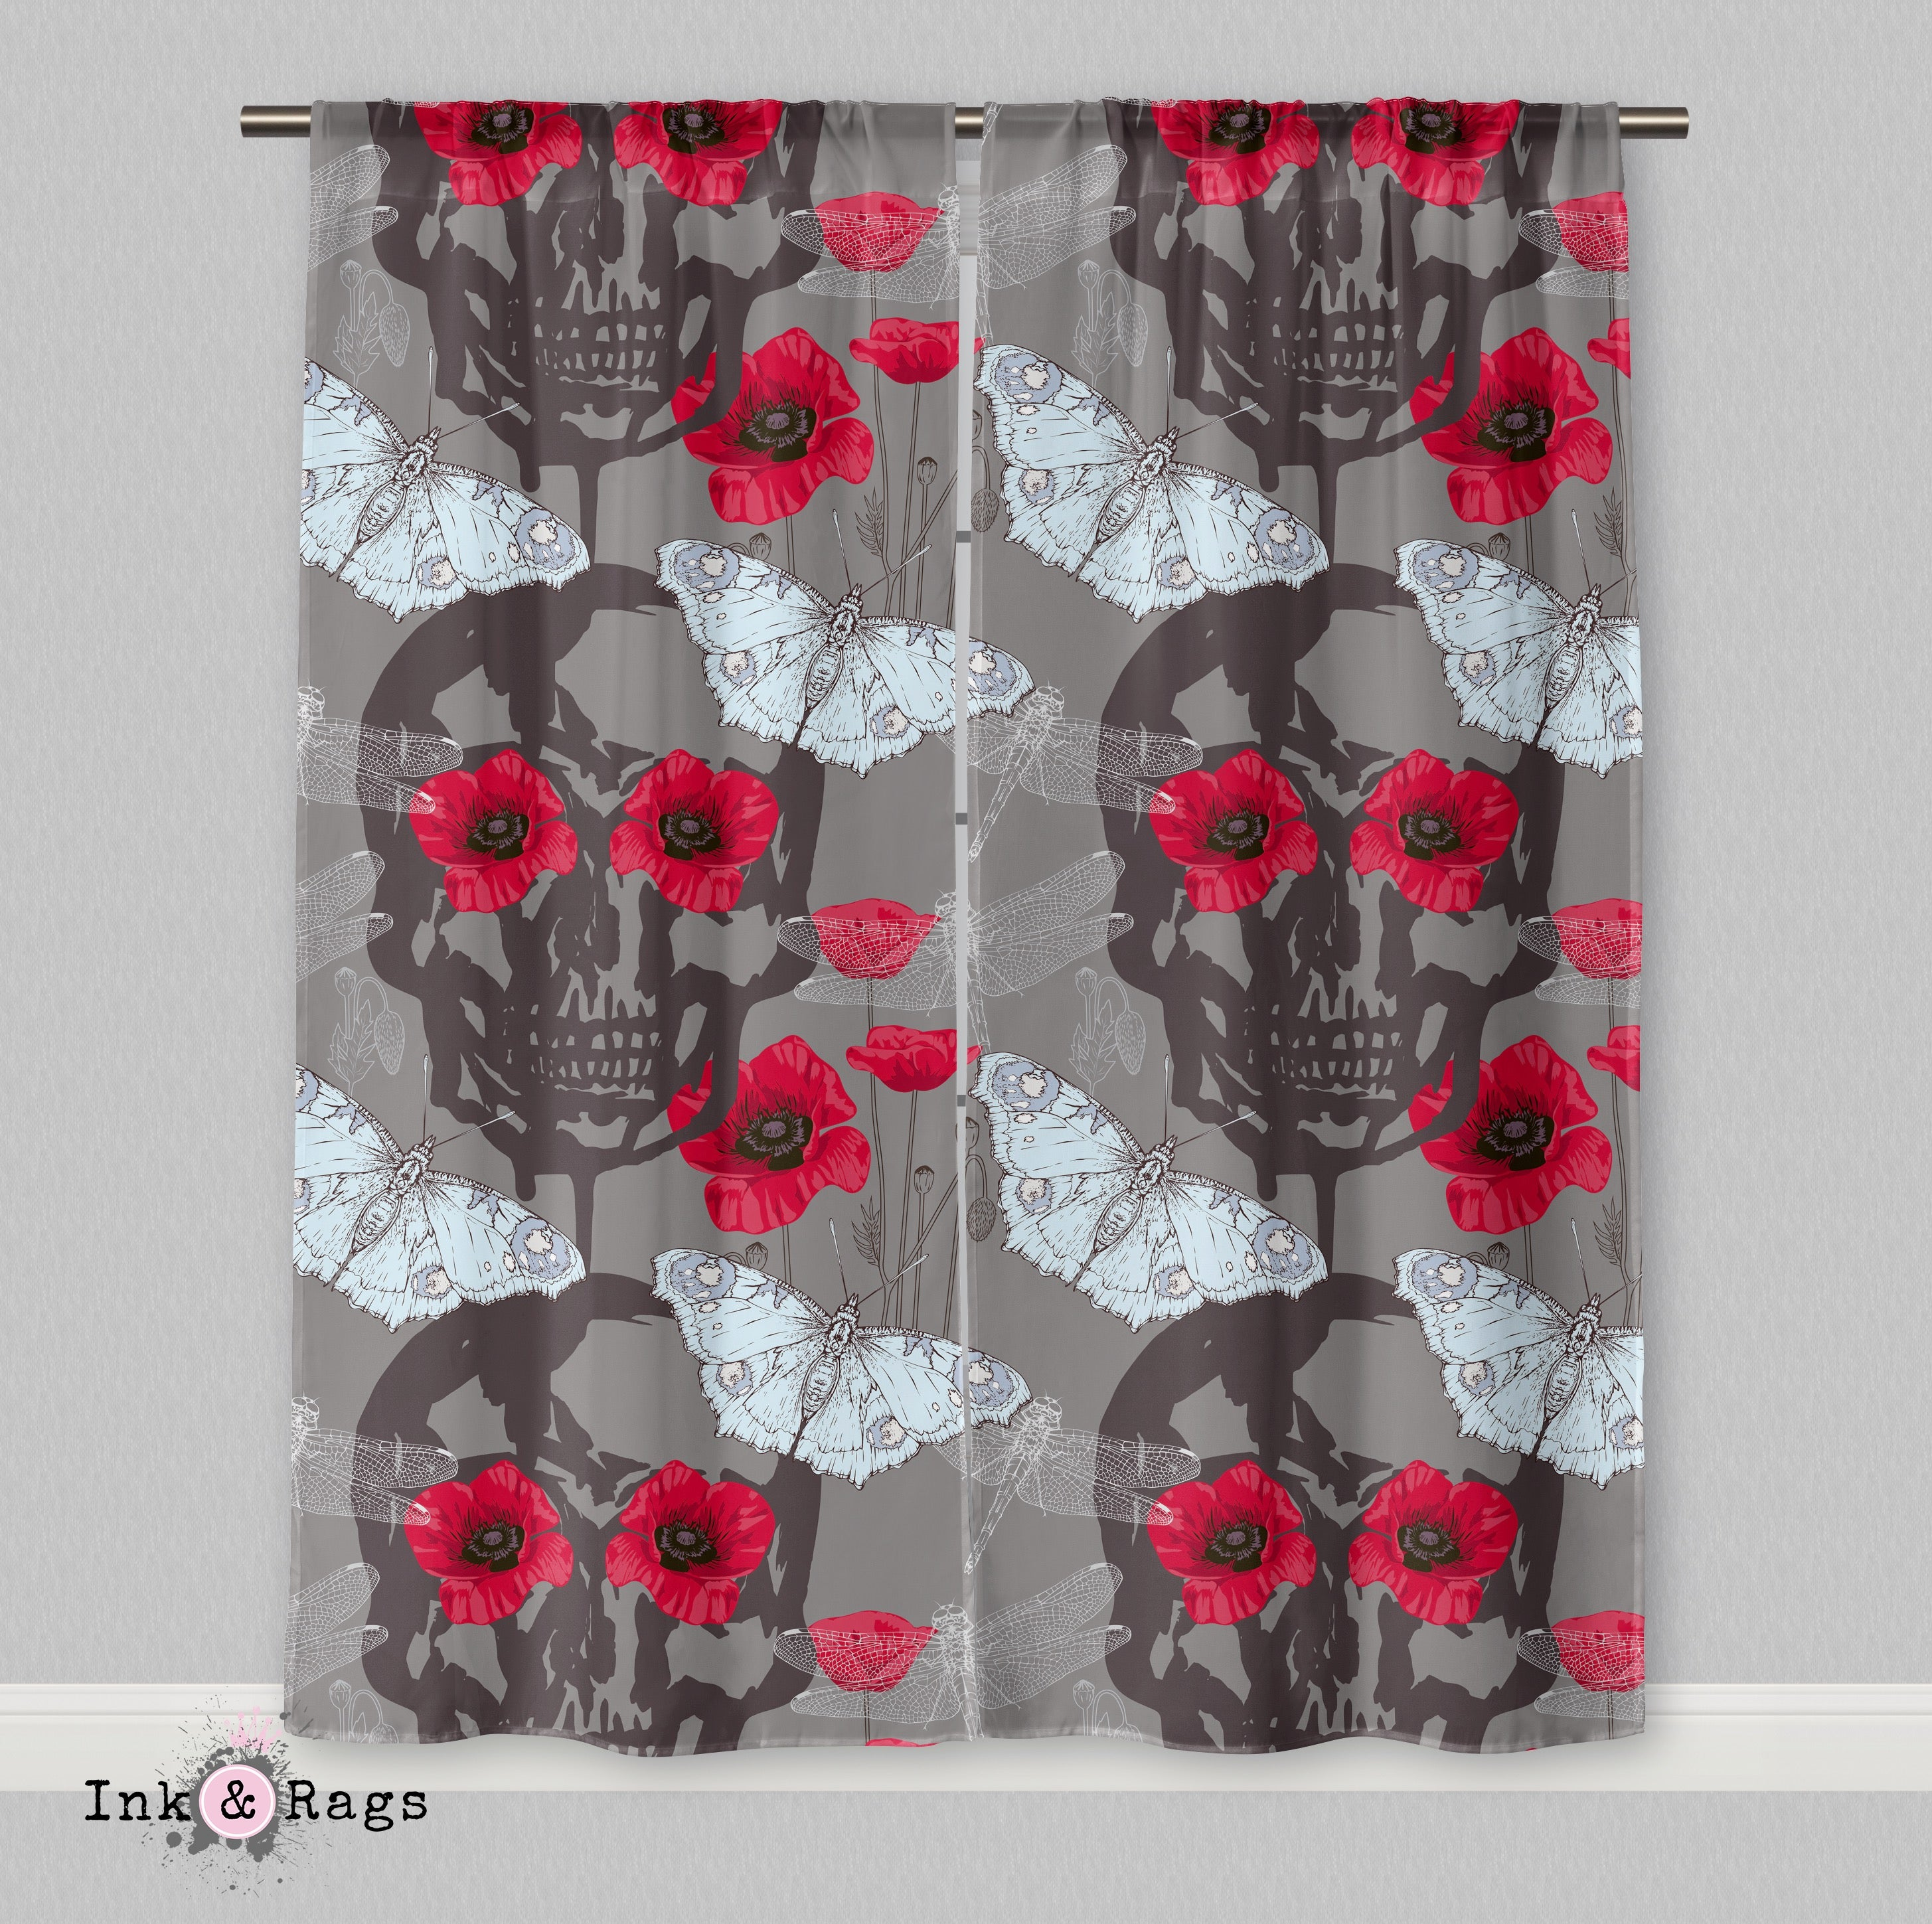 Red Poppy Skull Curtains or Sheers - Ink and Rags